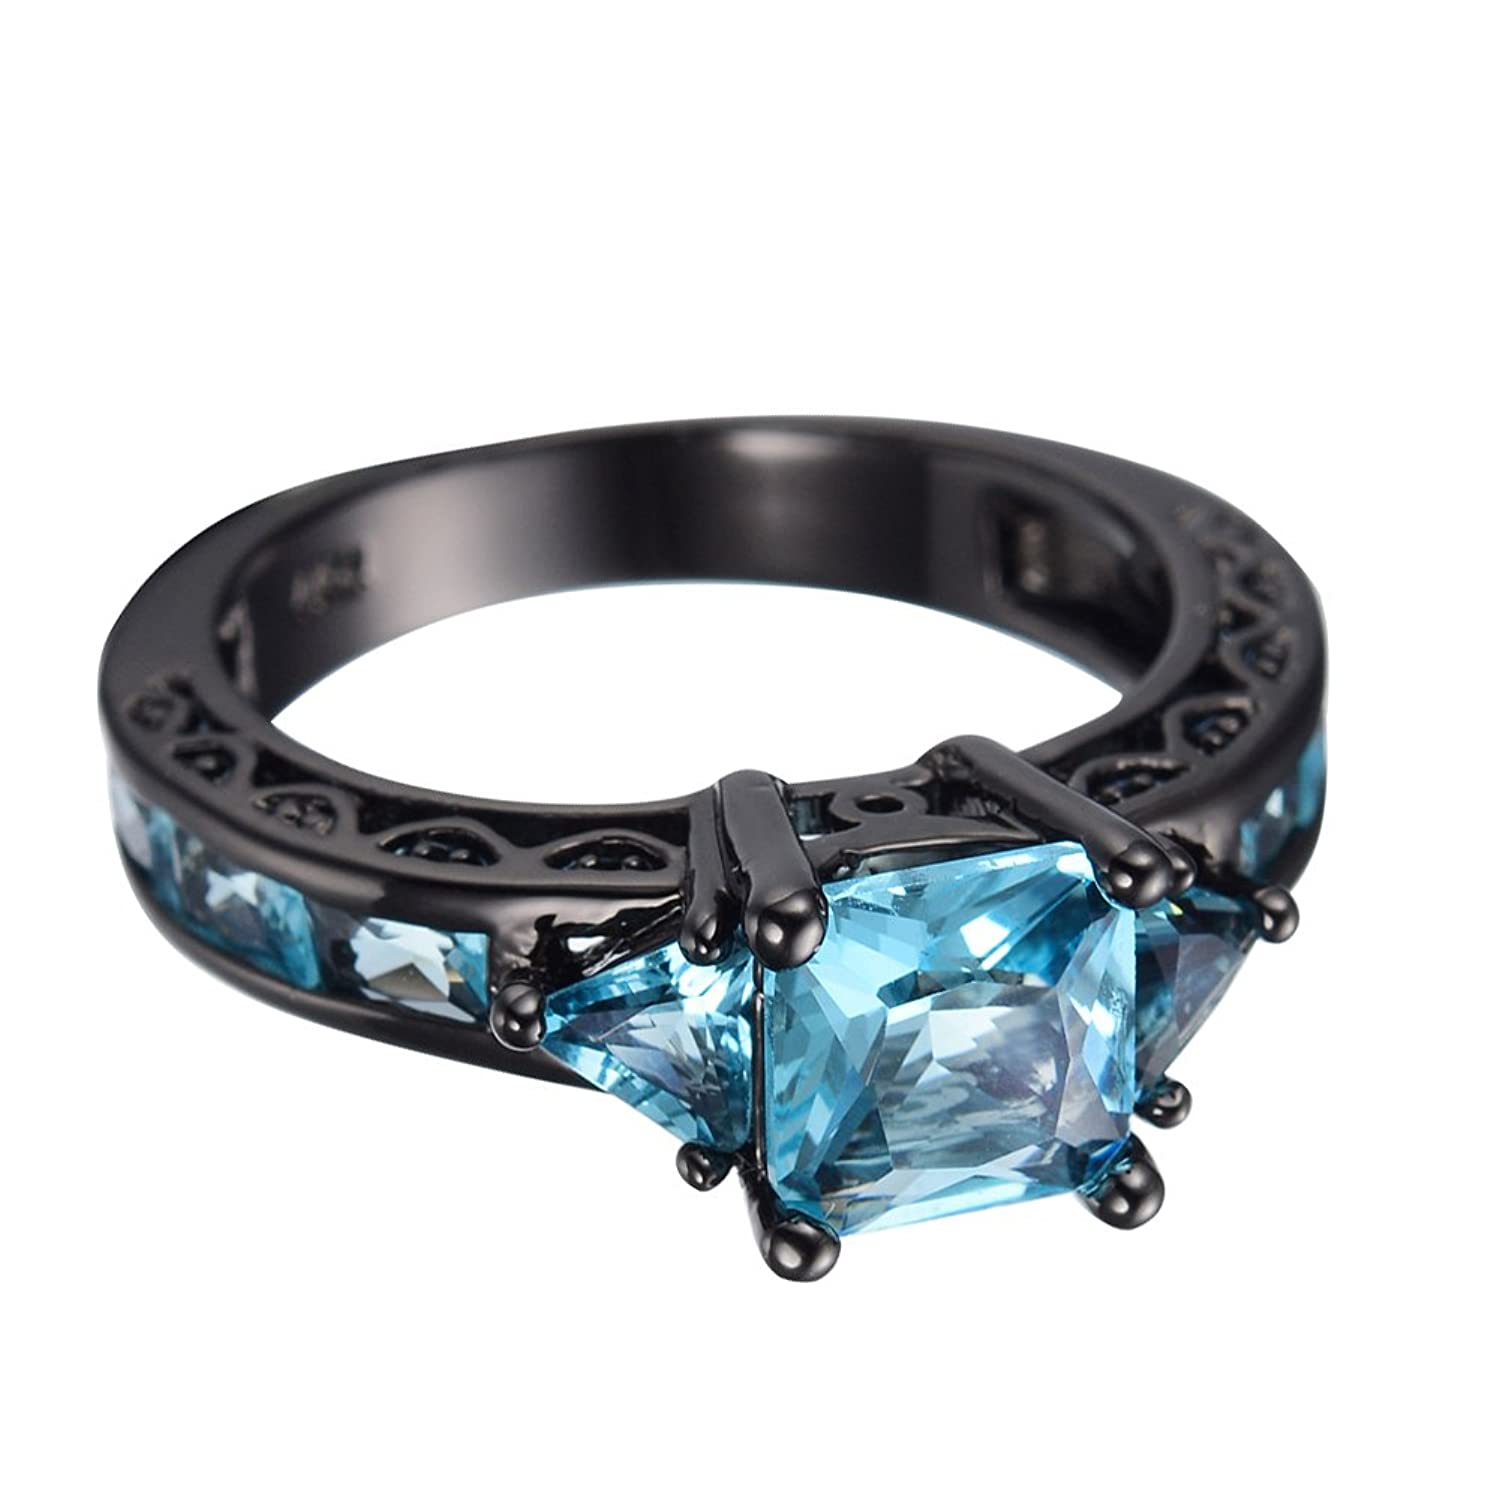 amazoncom junxin black gold aquamarine blue diamond antique rings princess cut wedding size567891011 jewelry - Blue Diamond Wedding Ring